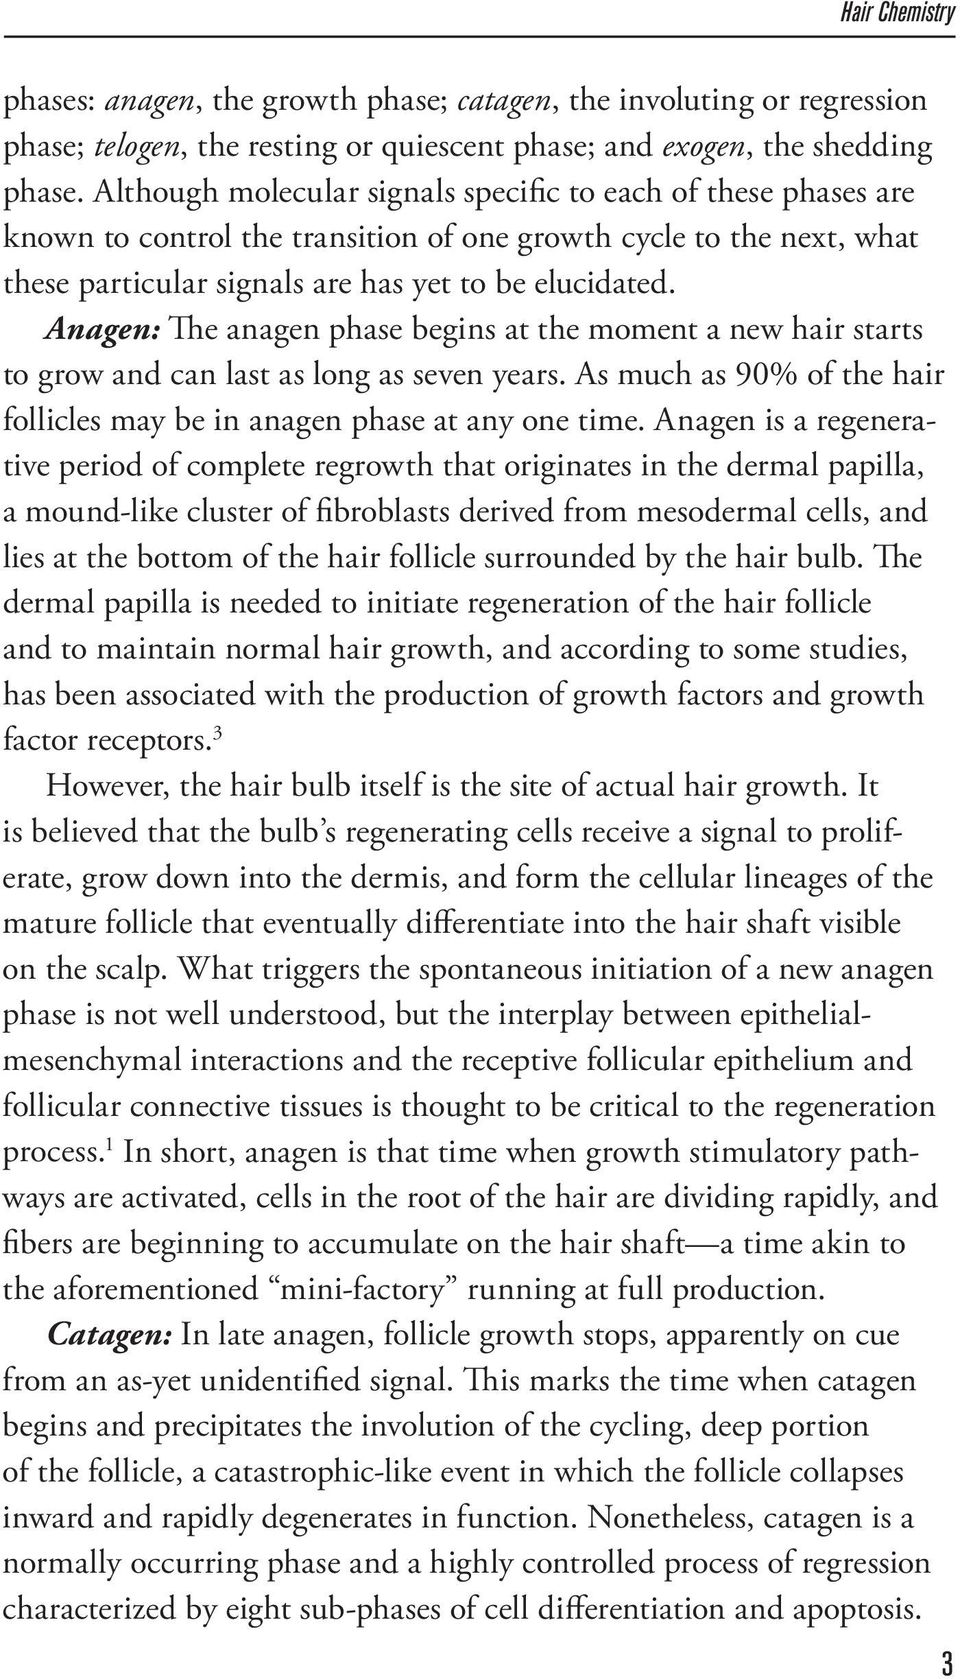 Anagen: The anagen phase begins at the moment a new hair starts to grow and can last as long as seven years. As much as 90% of the hair follicles may be in anagen phase at any one time.